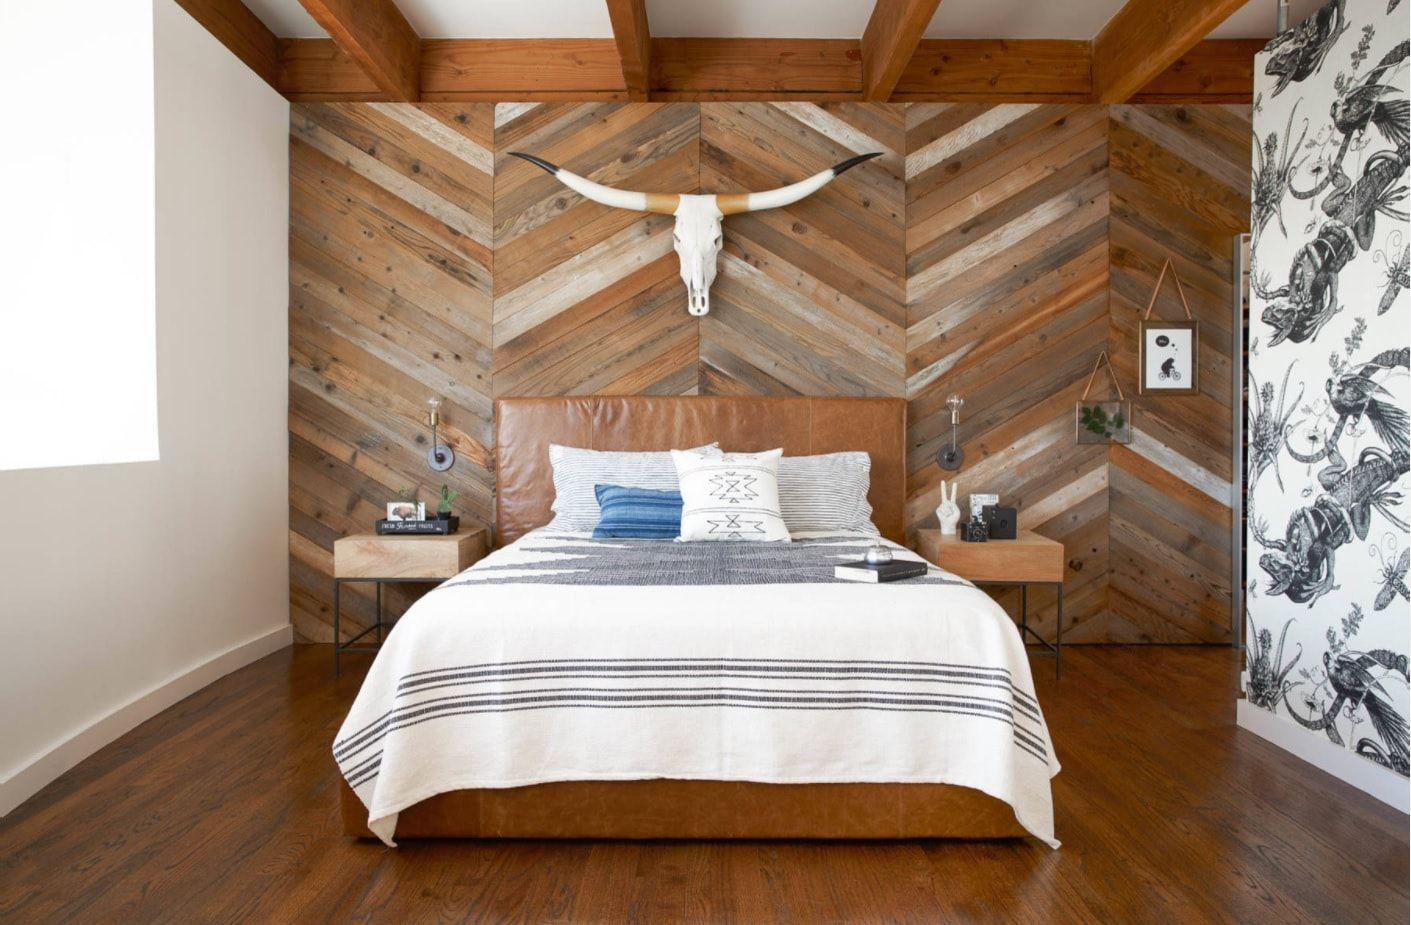 Wooden trimmed headboard with the animal's head above platform bed